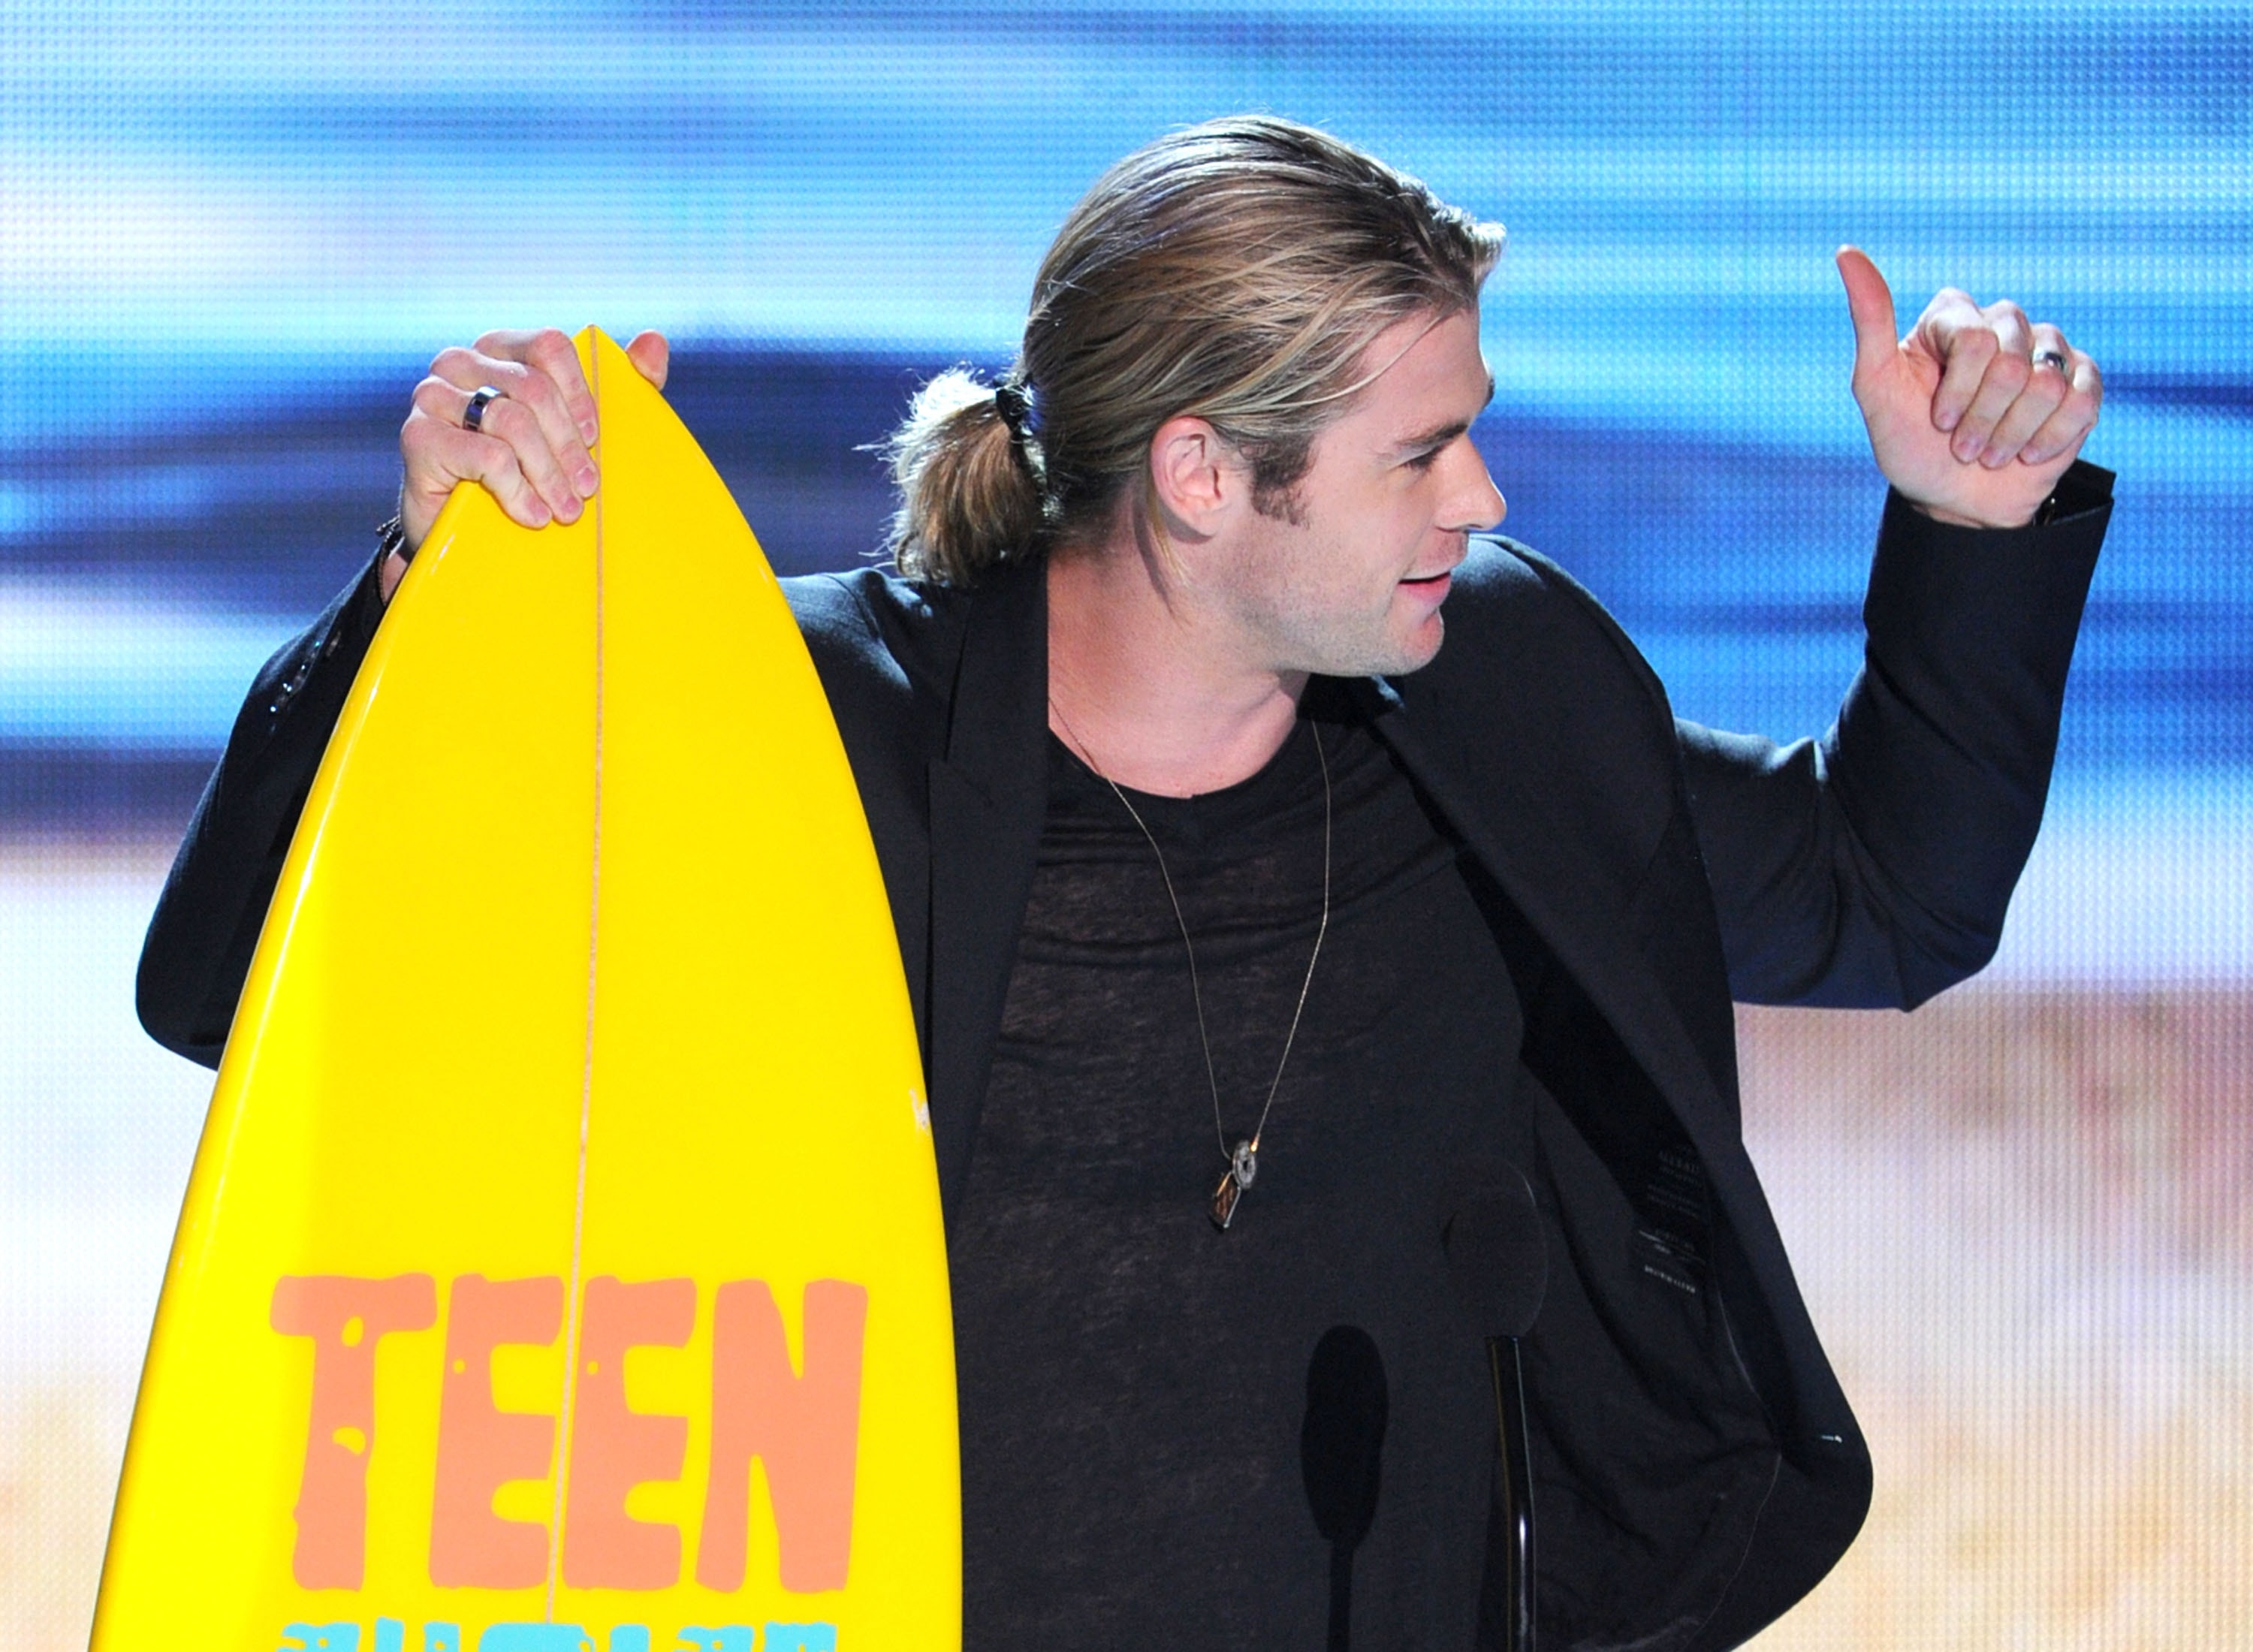 UNIVERSAL CITY, CA - JULY 22:  Actor Chris Hemsworth accepts the Choice Summer Male Movie Star award onstage during the 2012 Teen Choice Awards at Gibson Amphitheatre on July 22, 2012 in Universal City, California.  (Photo by Kevin Winter/Getty Images)